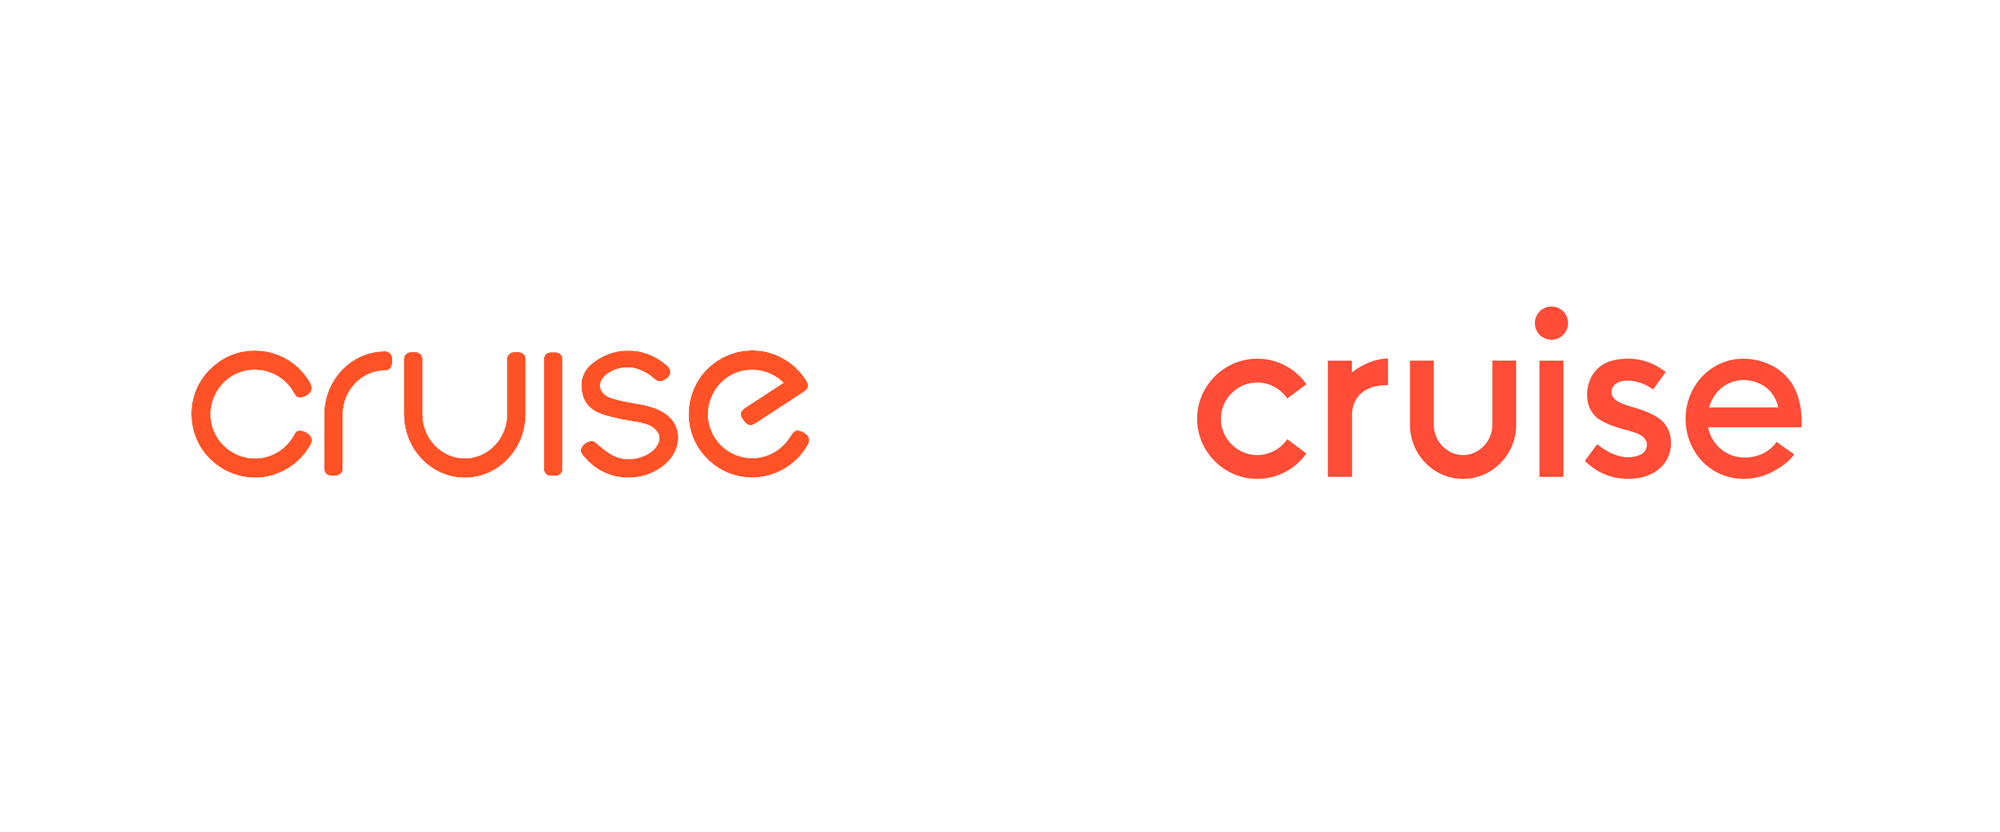 New Logo and Identity for Cruise by Moving Brands and In-house